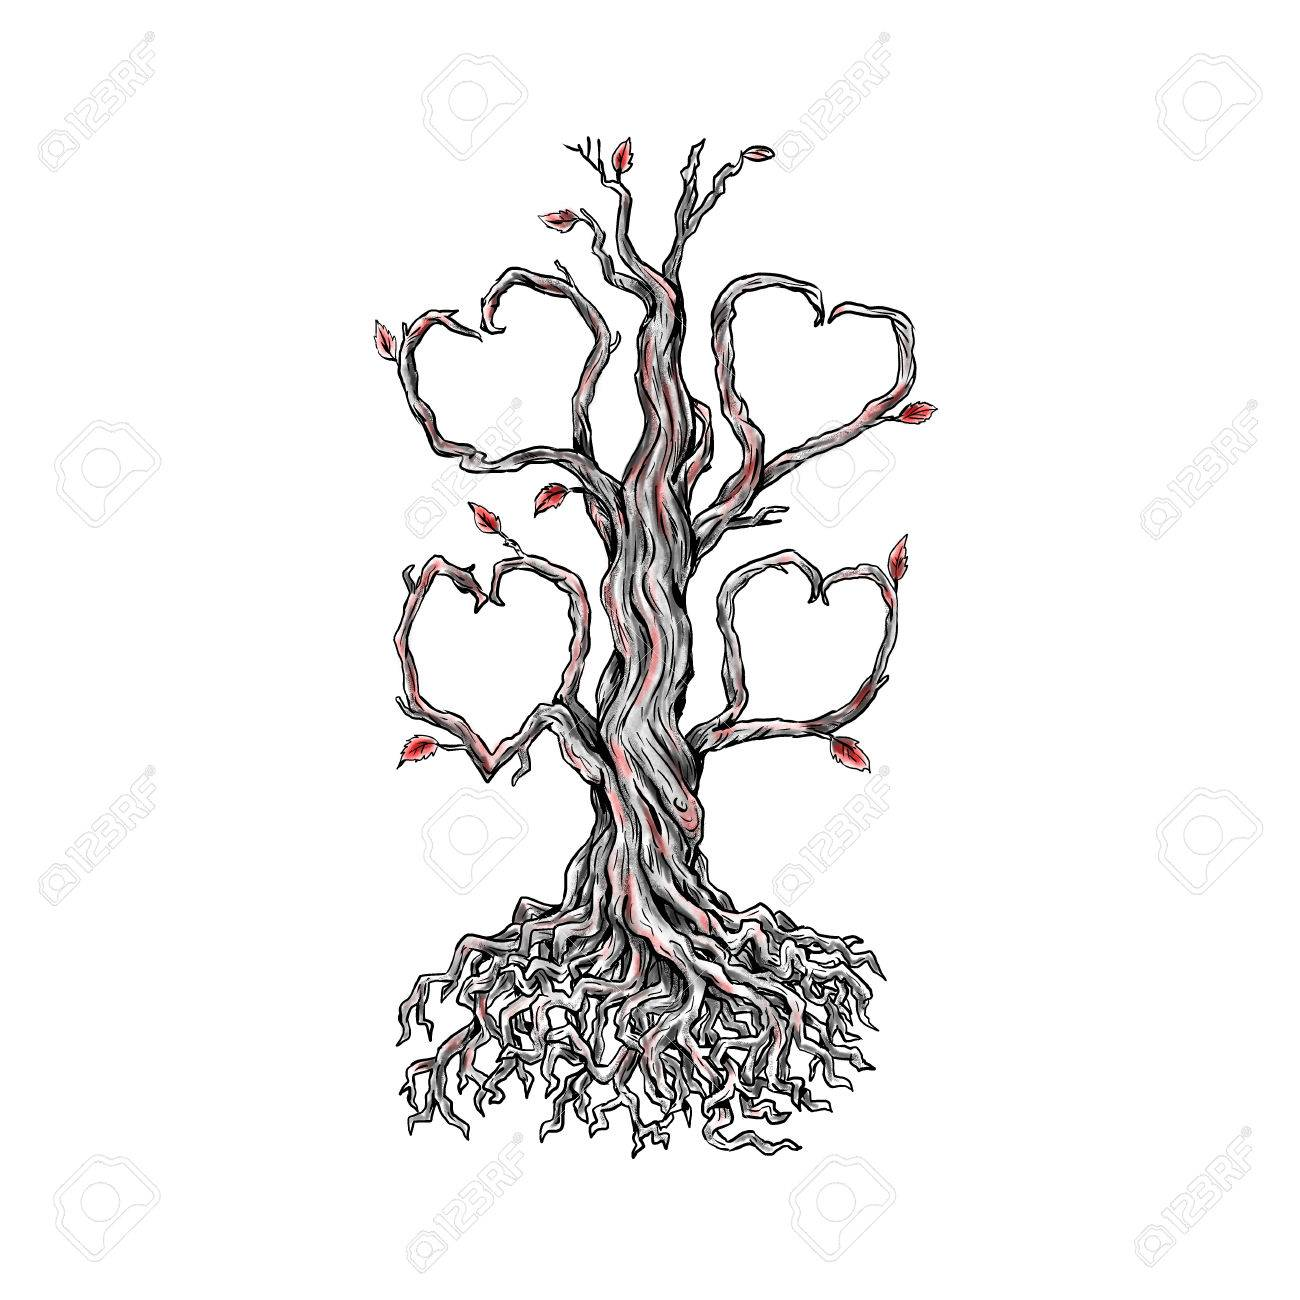 Tattoo style illustration of a gnarly old oak tree with roots tattoo style illustration of a gnarly old oak tree with roots and branches forming a heart biocorpaavc